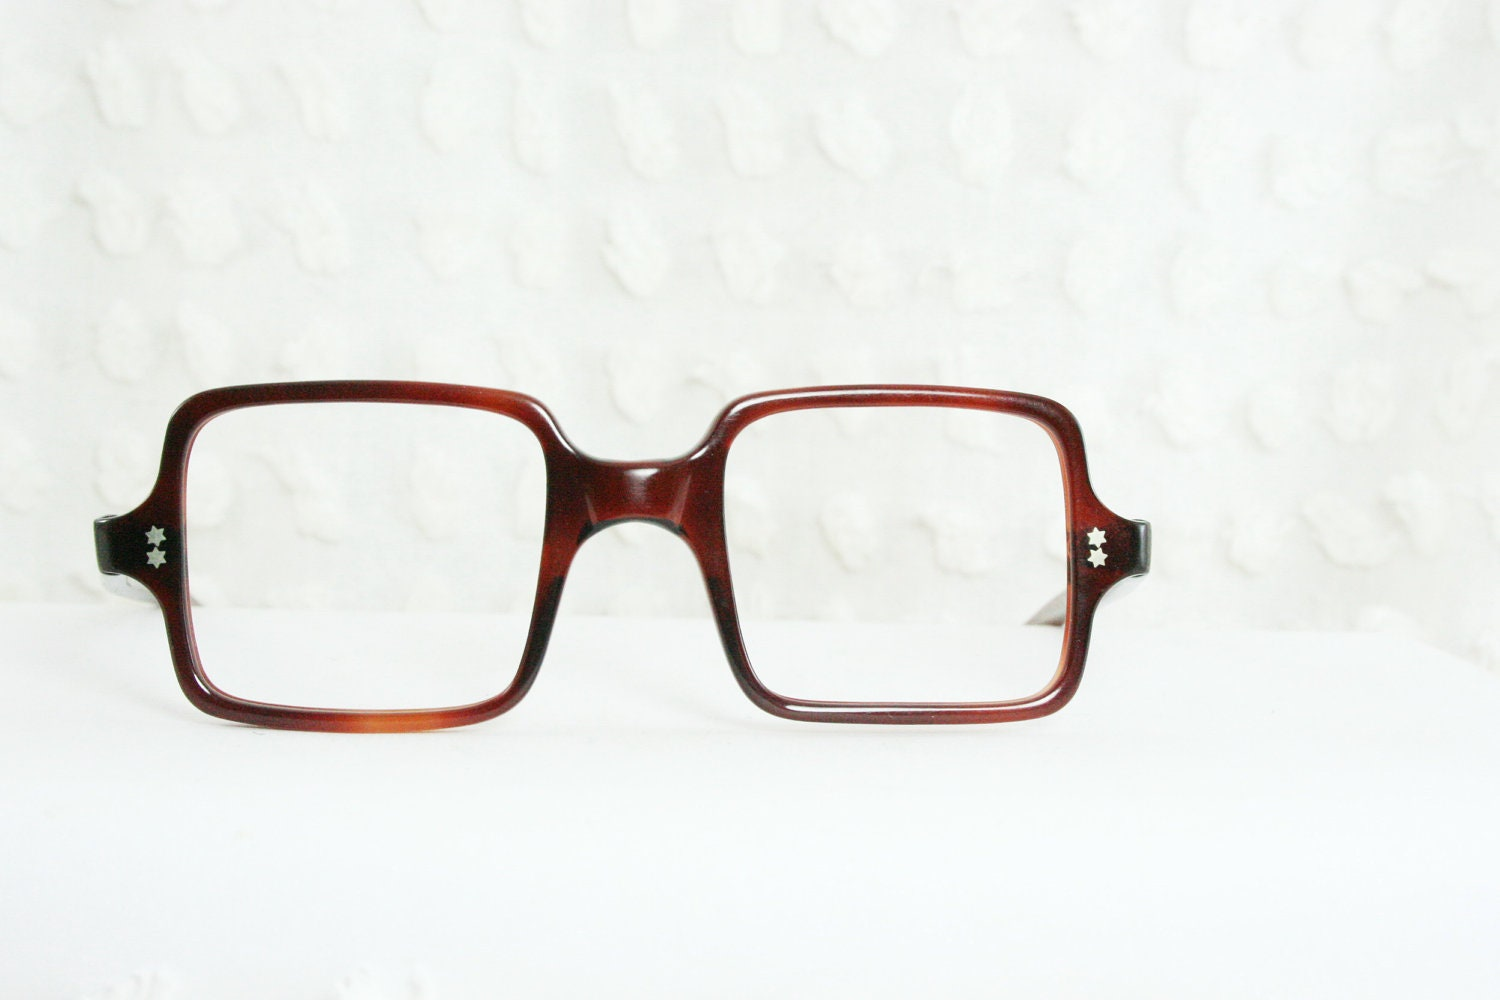 Eyeglass Frames Square : Vintage 60s Square Glasses Mod Tortoise 1960s by DIAeyewear